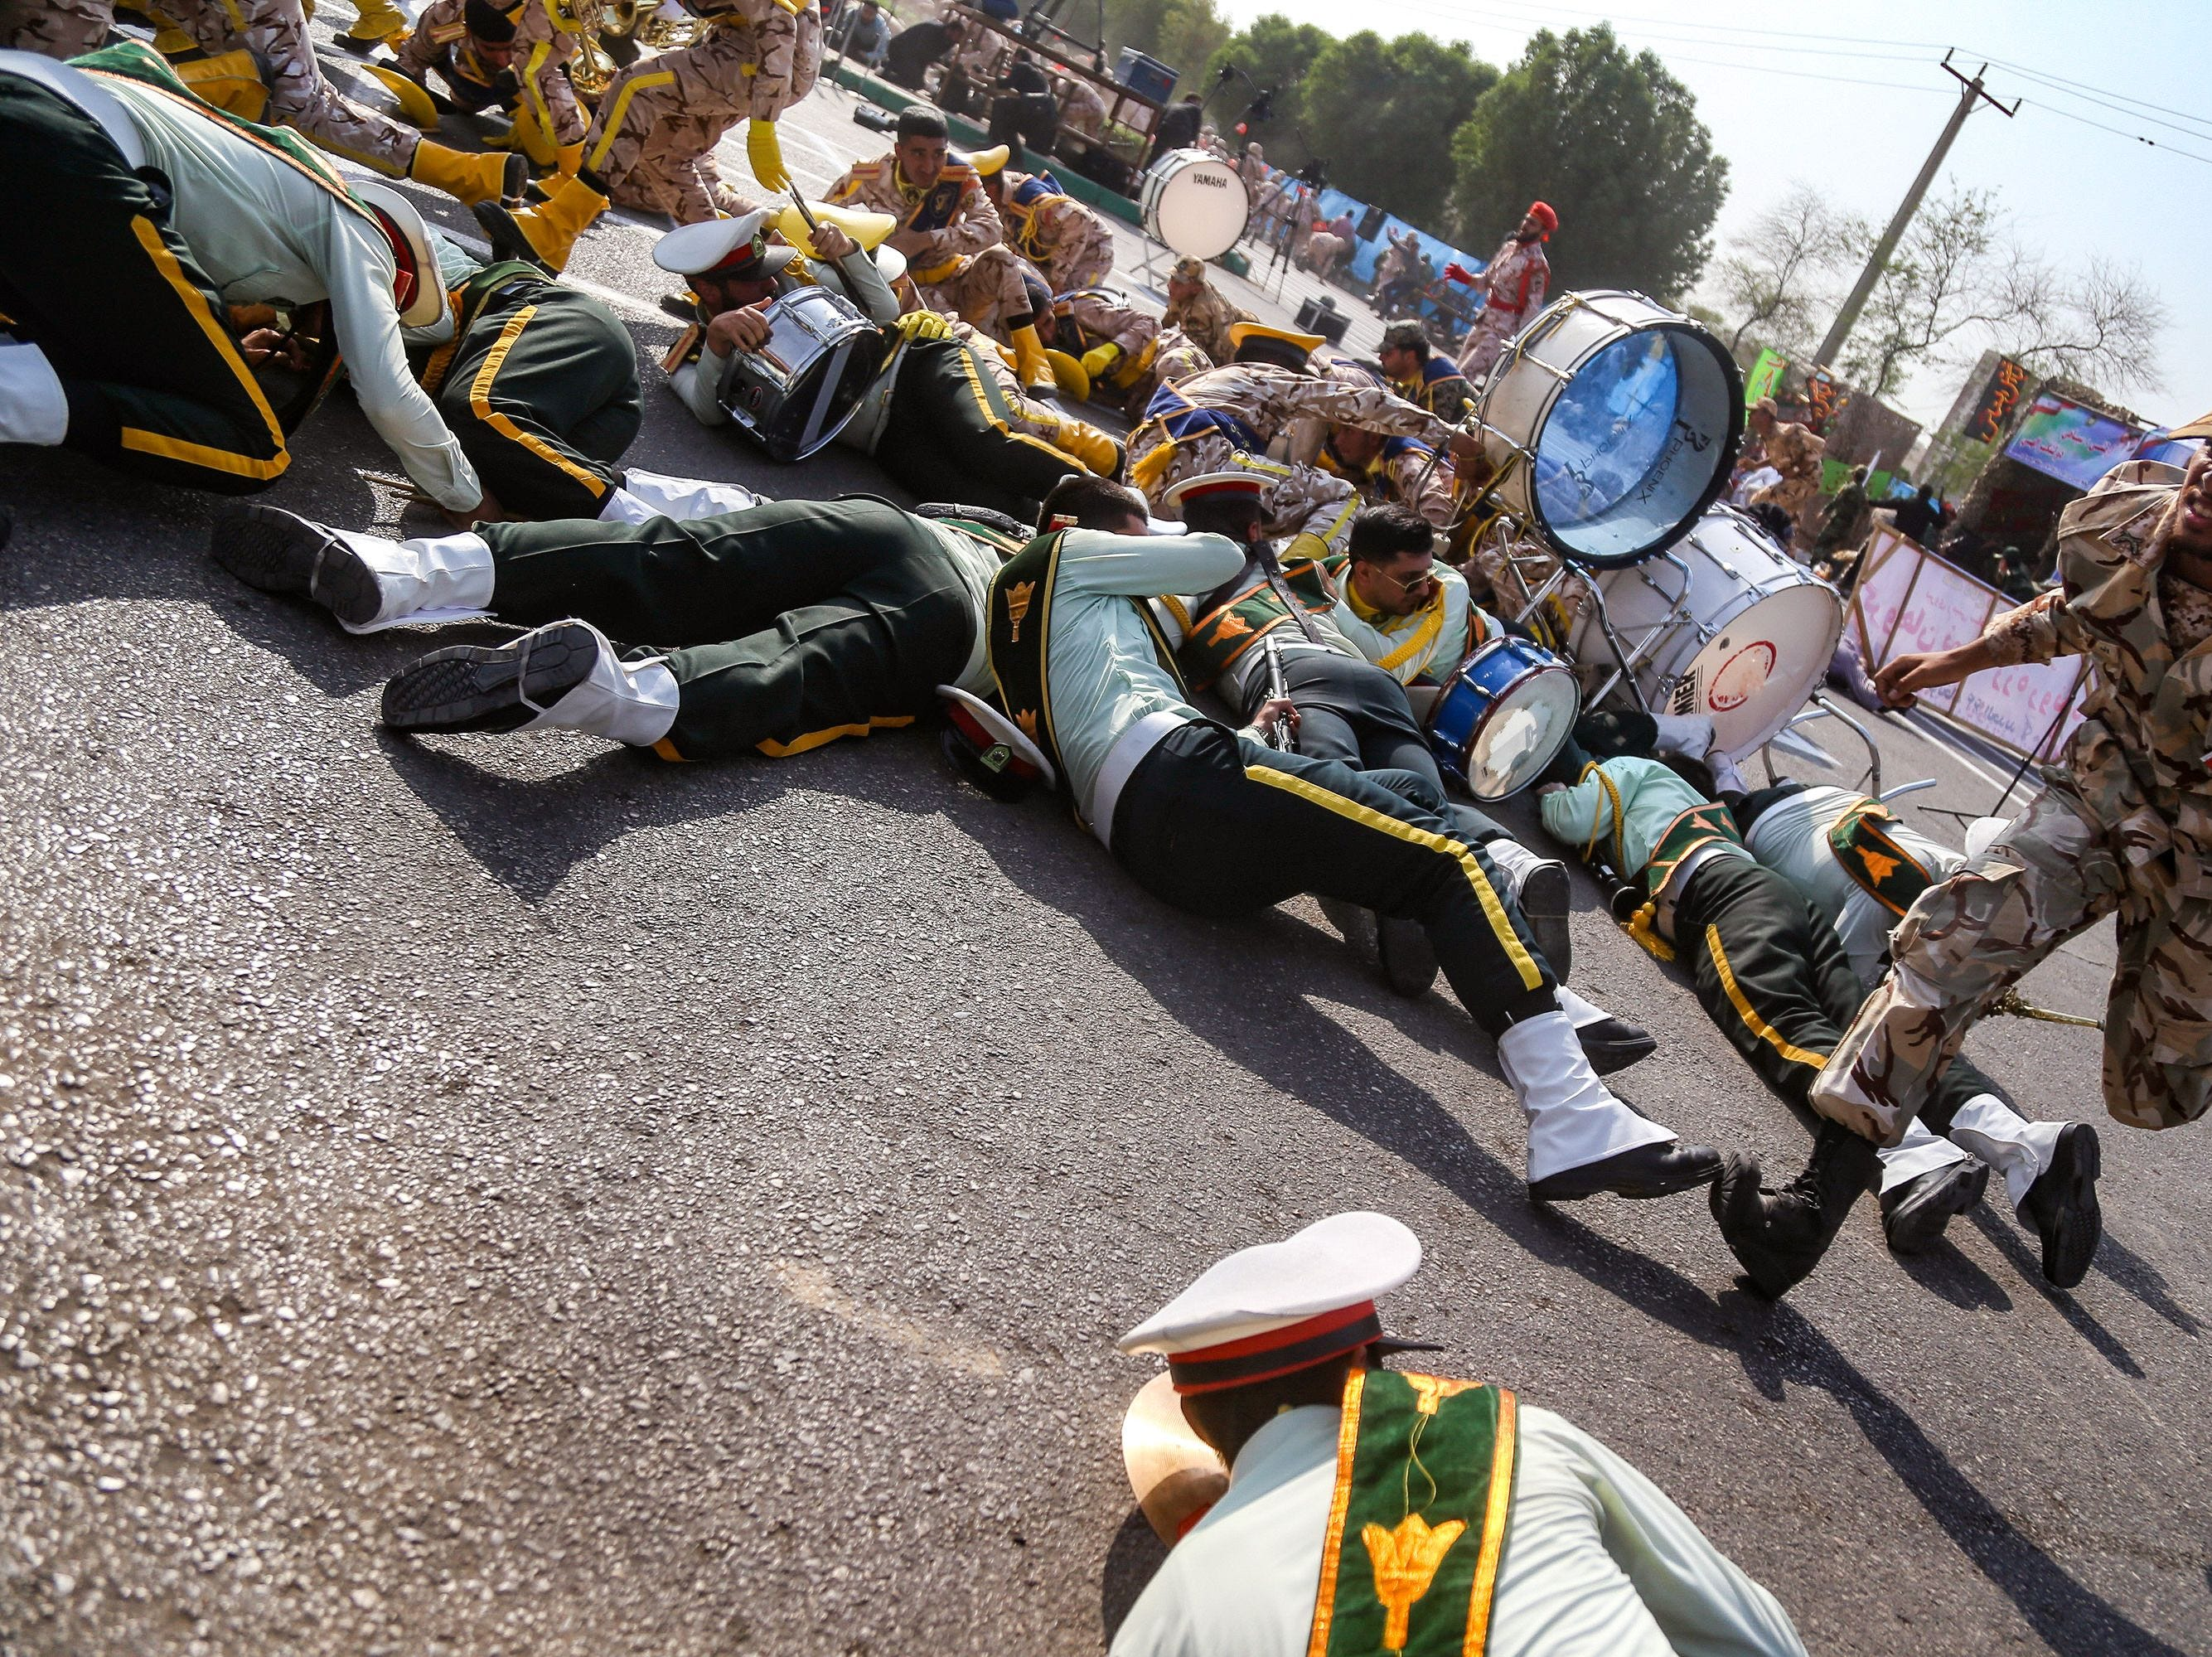 A soldier runs past injured comrades lying on the ground at the scene of an attack on a military parade in Ahvazm Iran that was marking the anniversary of the outbreak of its devastating 1980-1988 war with Saddam Hussein's Iraq on Sept. 22, 2018.